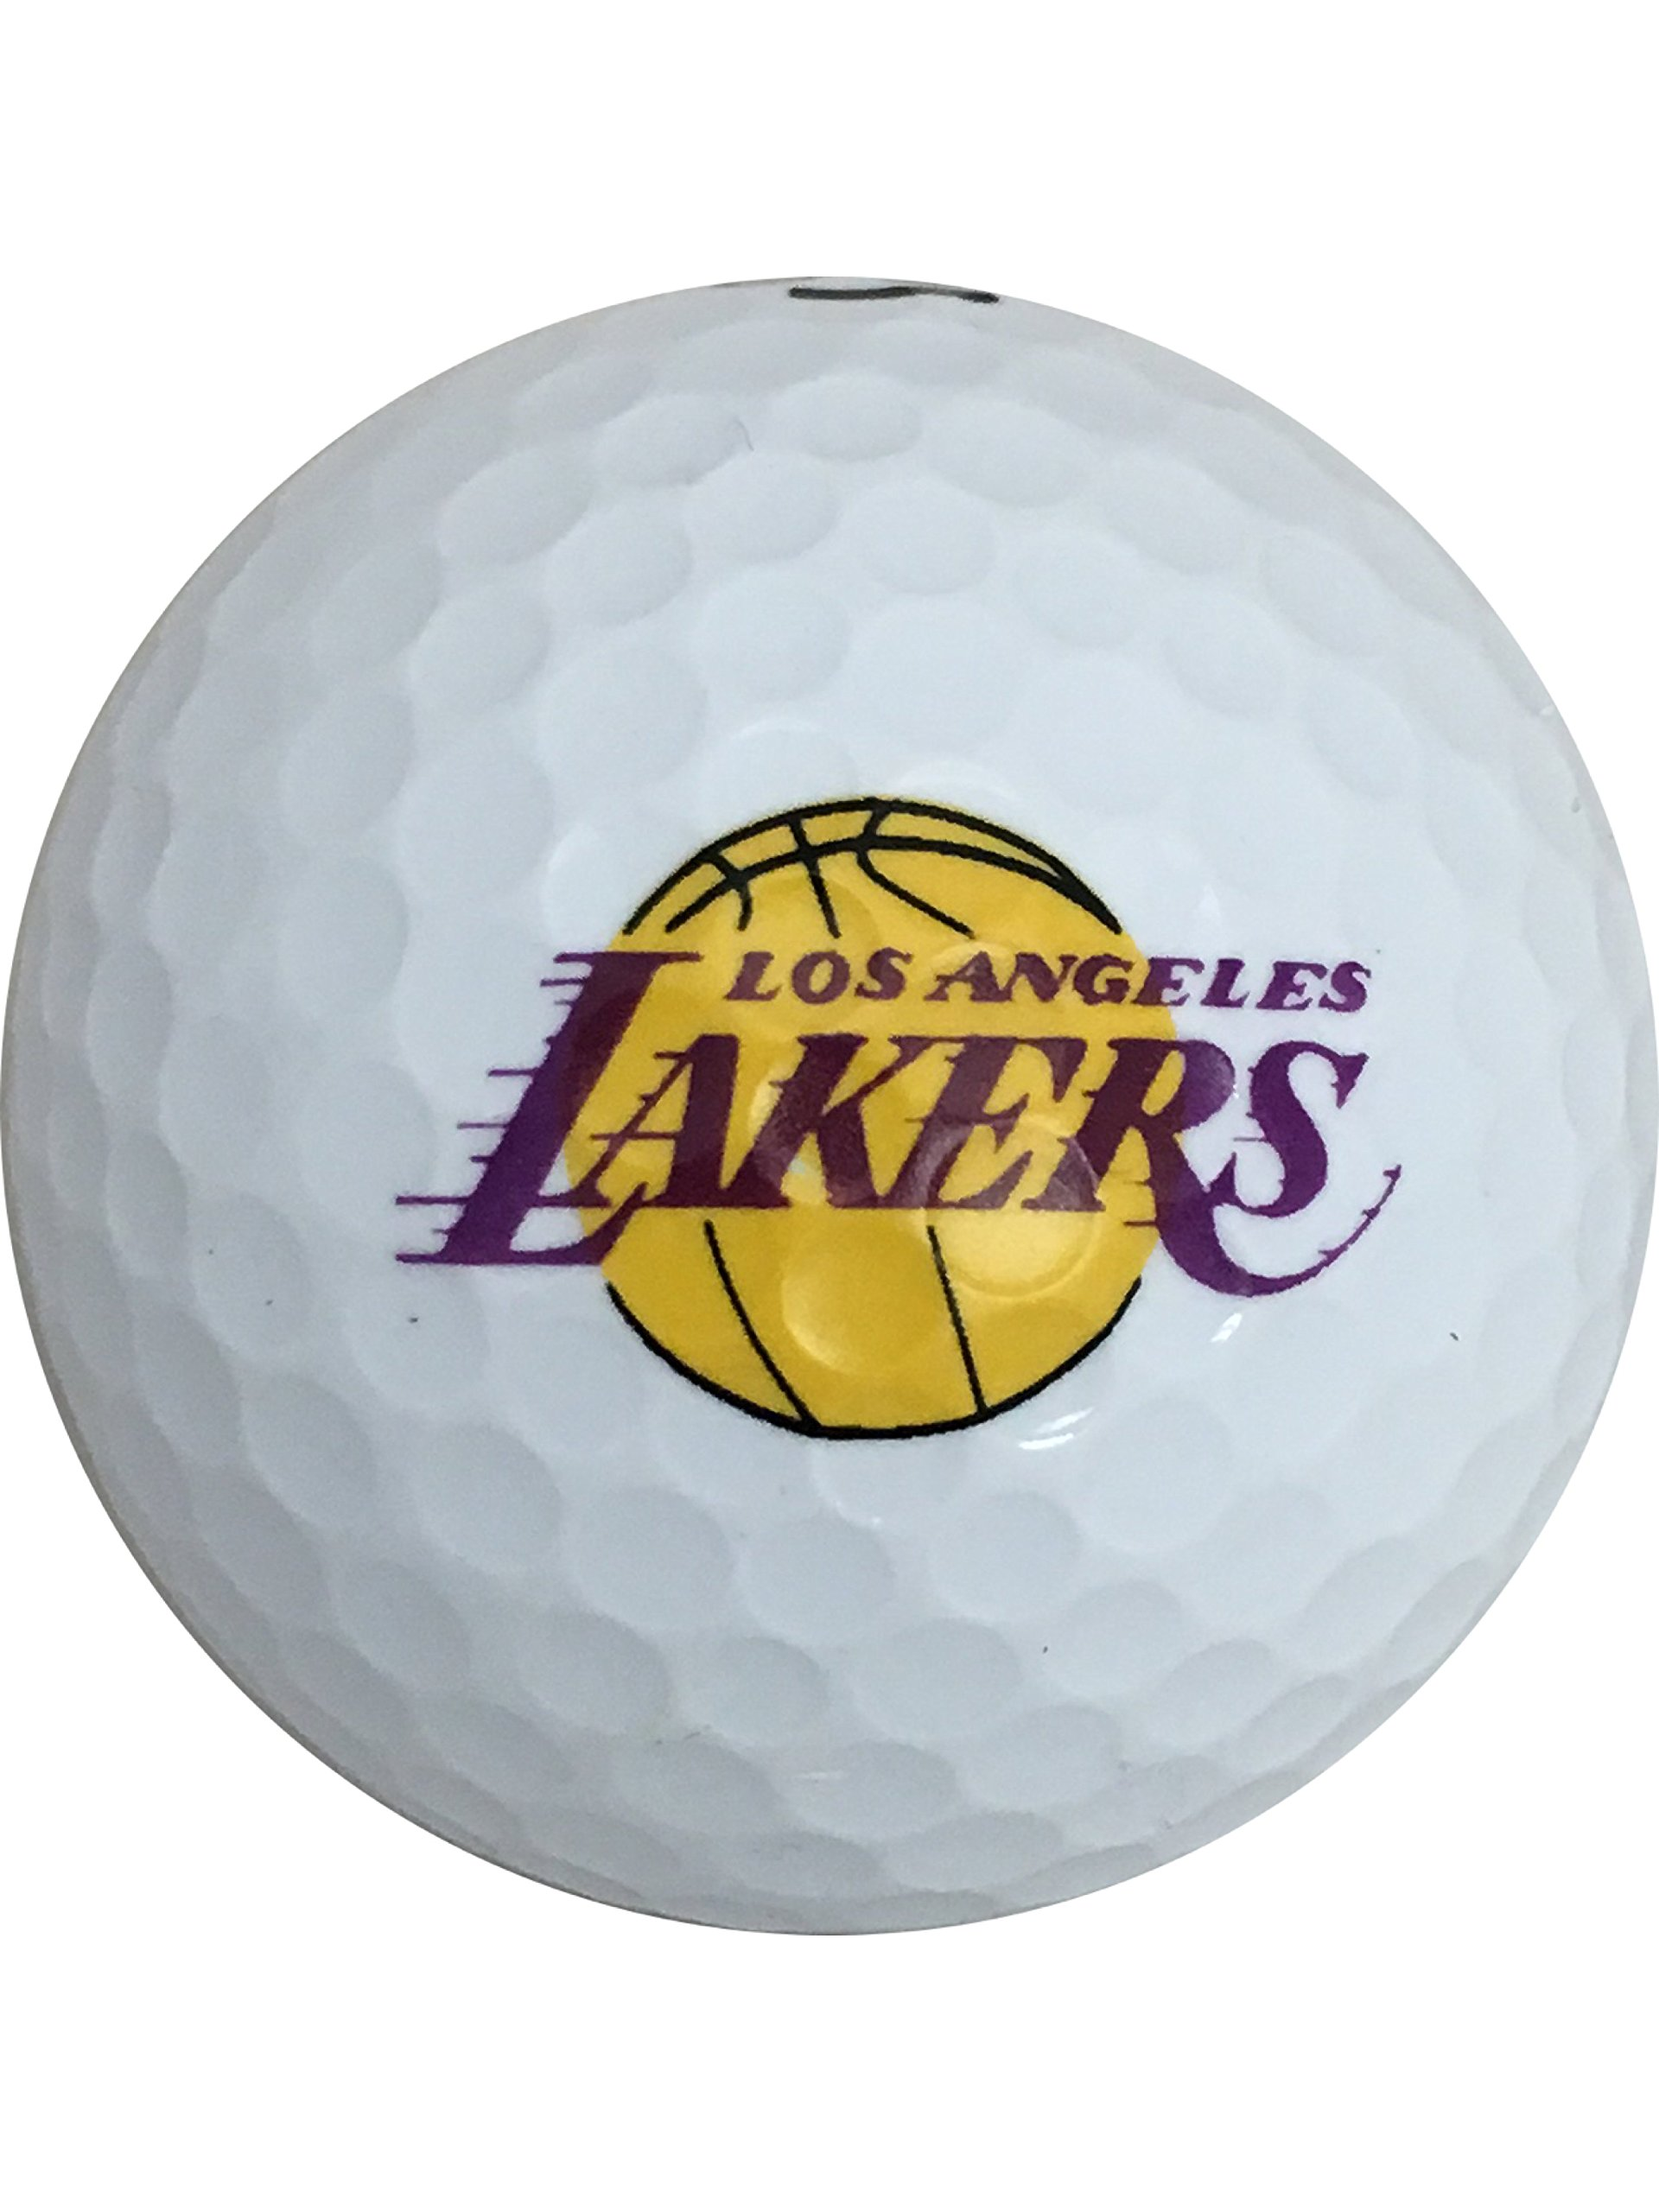 Vice Golf PRO PLUS NBA LOS ANGELES LAKERS GOLF BALLS (Lakers)